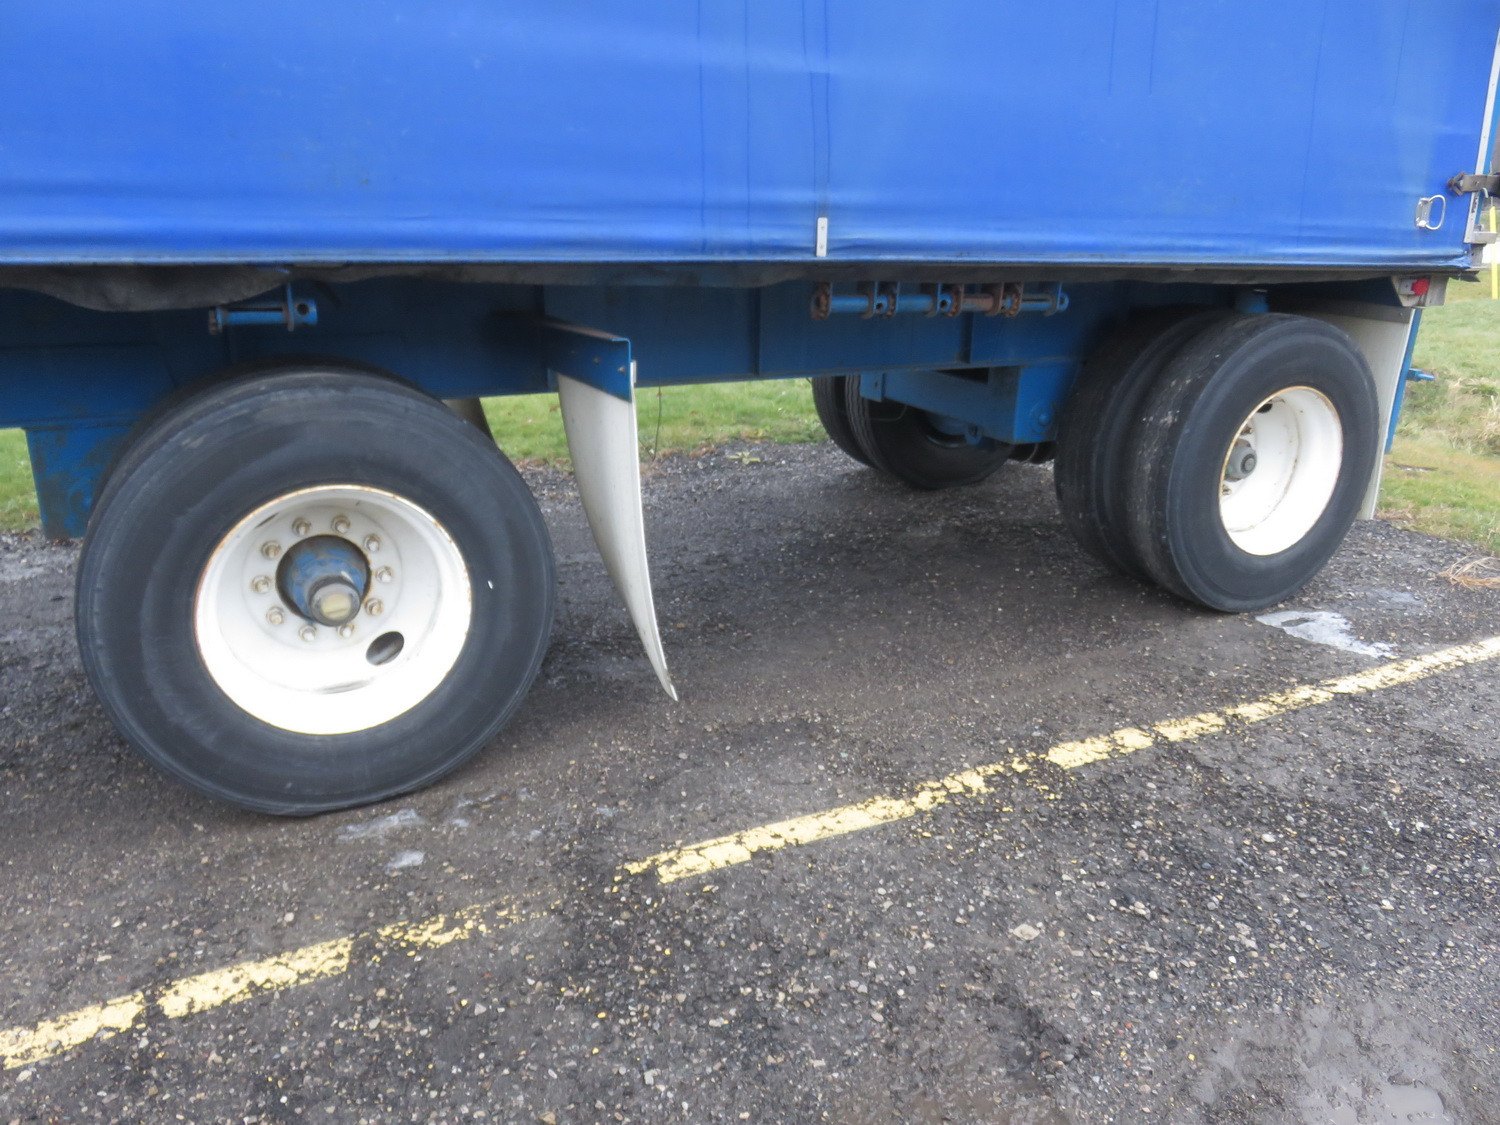 LODE KING 48' TANDEM AXLE BLUE CURTAIN SIDE TRAILER - S/N 2LDPA4829XC032084 - Image 5 of 6